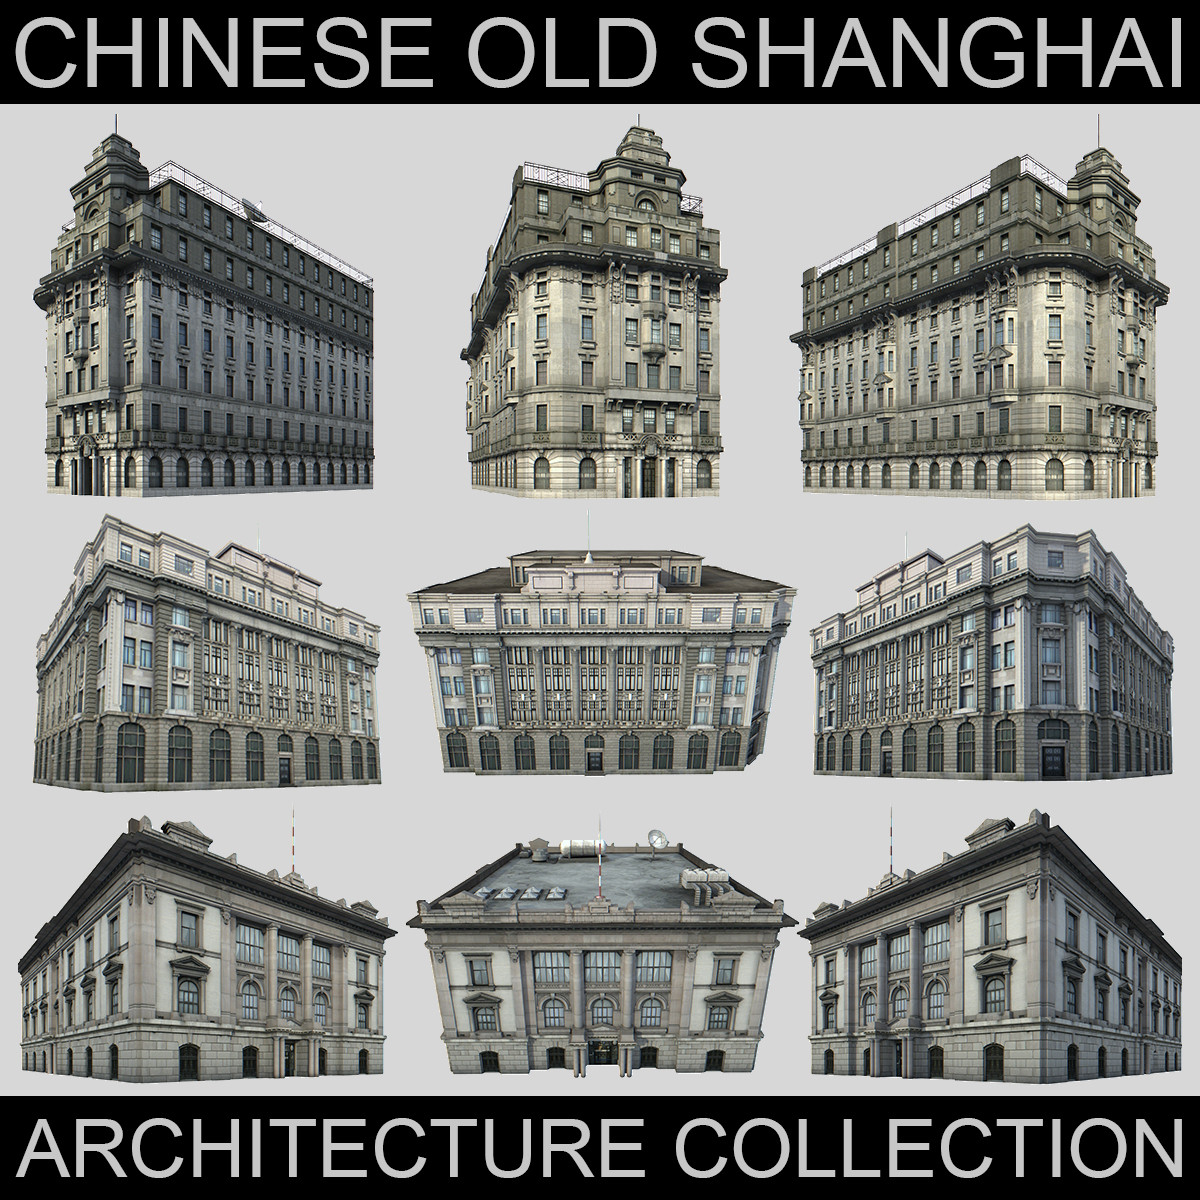 Old Shanghai Architecture Collection.jpg